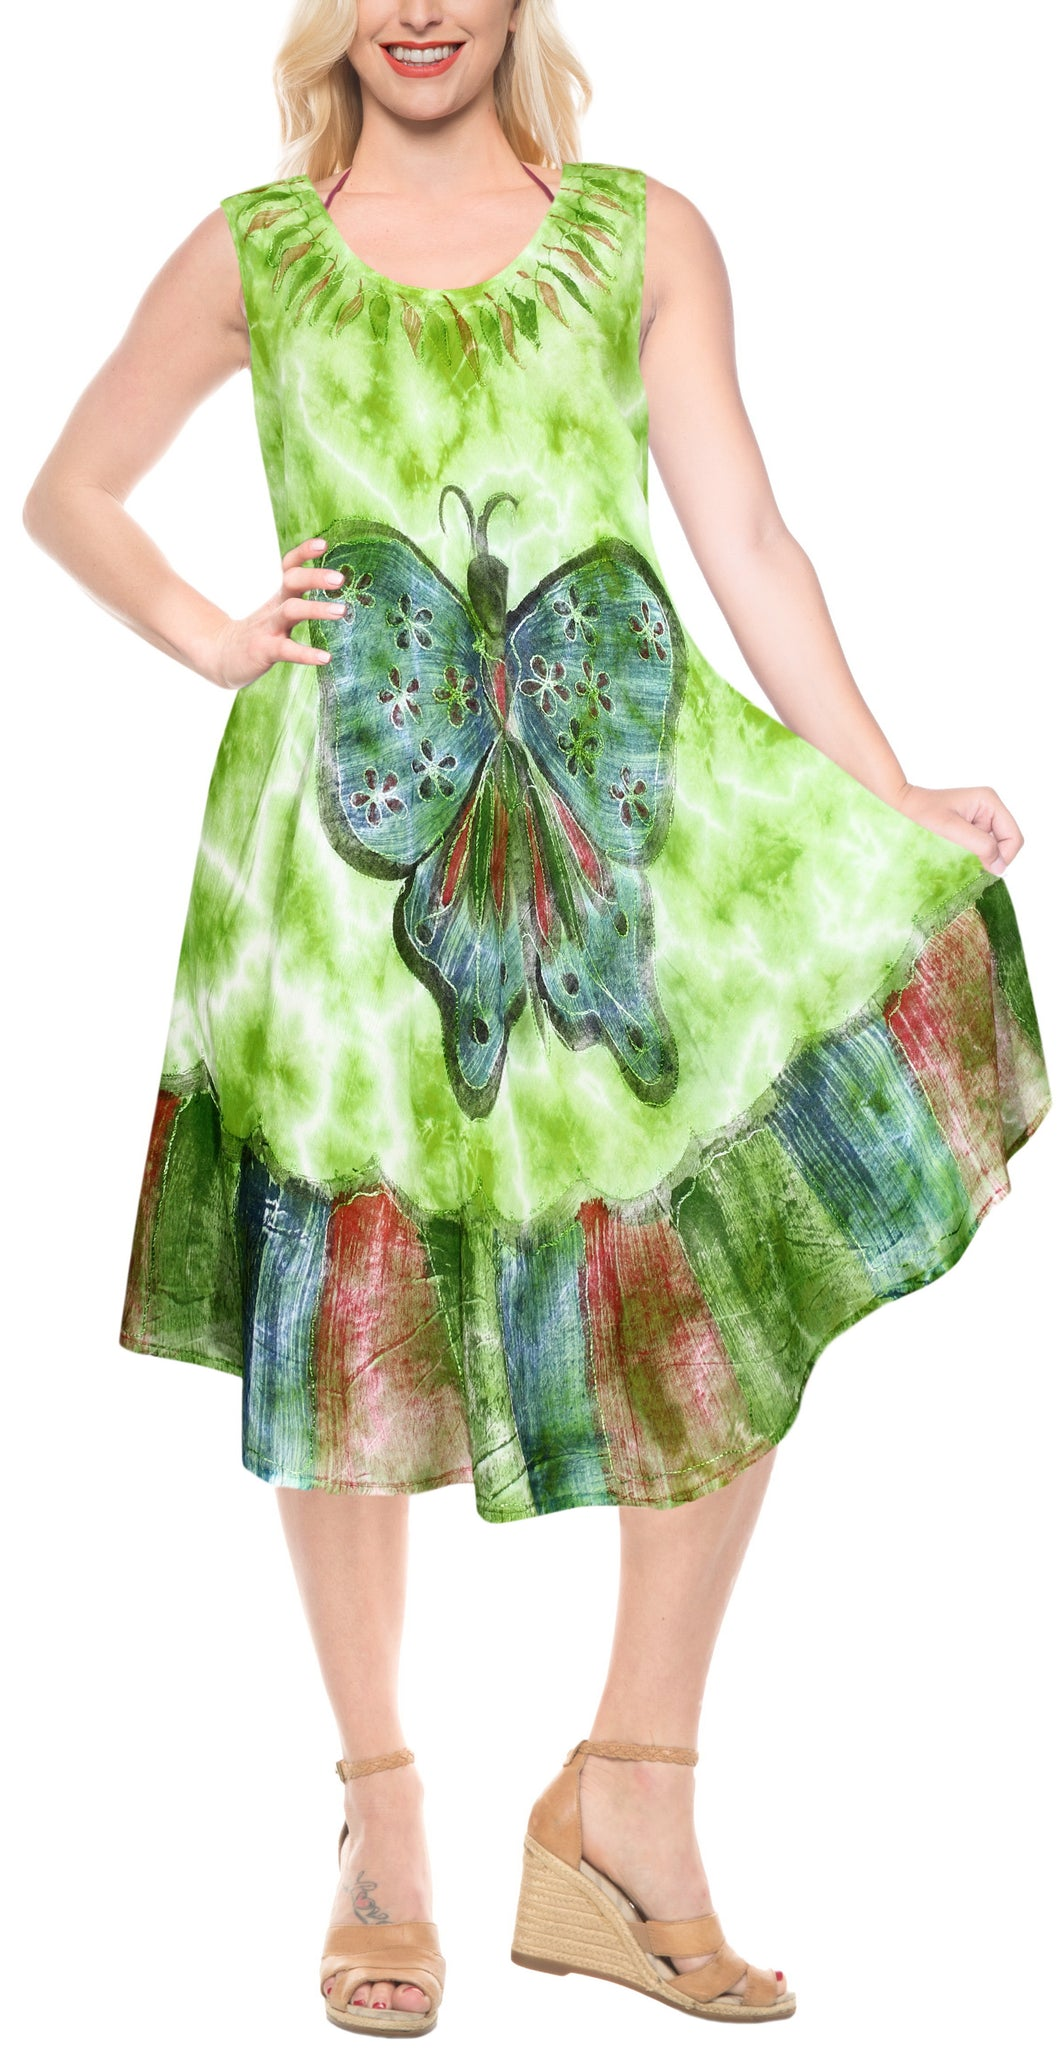 LA LEELA Casual DRESS Beach Cover up Rayon Tie Dye Womens Party OSFM 14-20 [L-2X] Parrot Green_3658